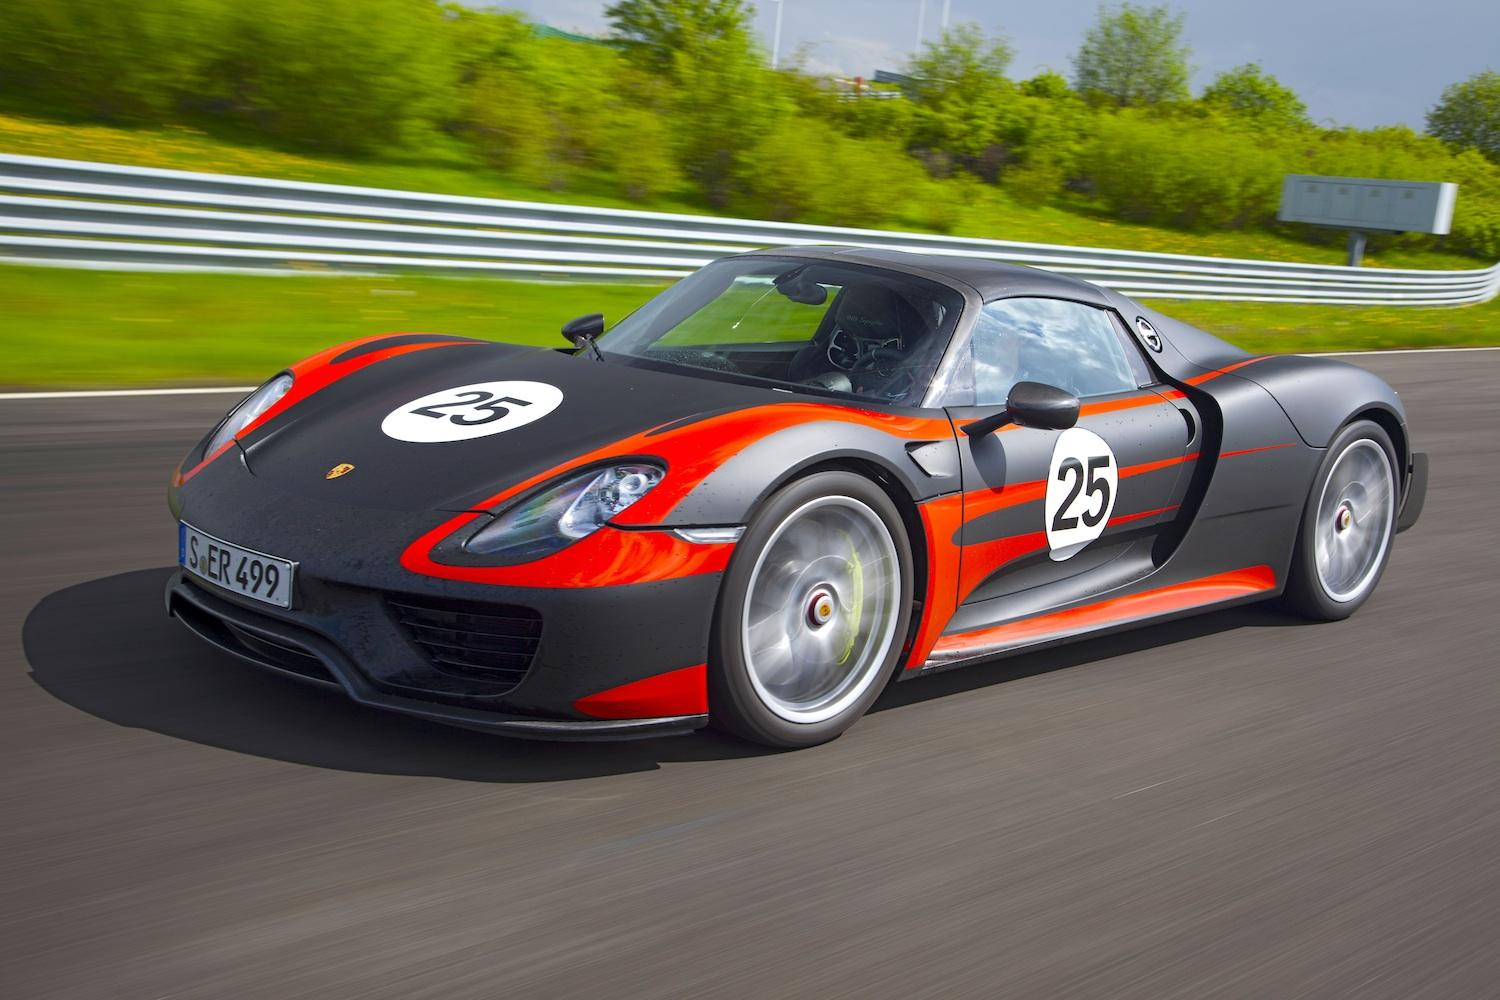 Porsche S 960 Sports Car Will Be A Mid Engined 8 Cylinder